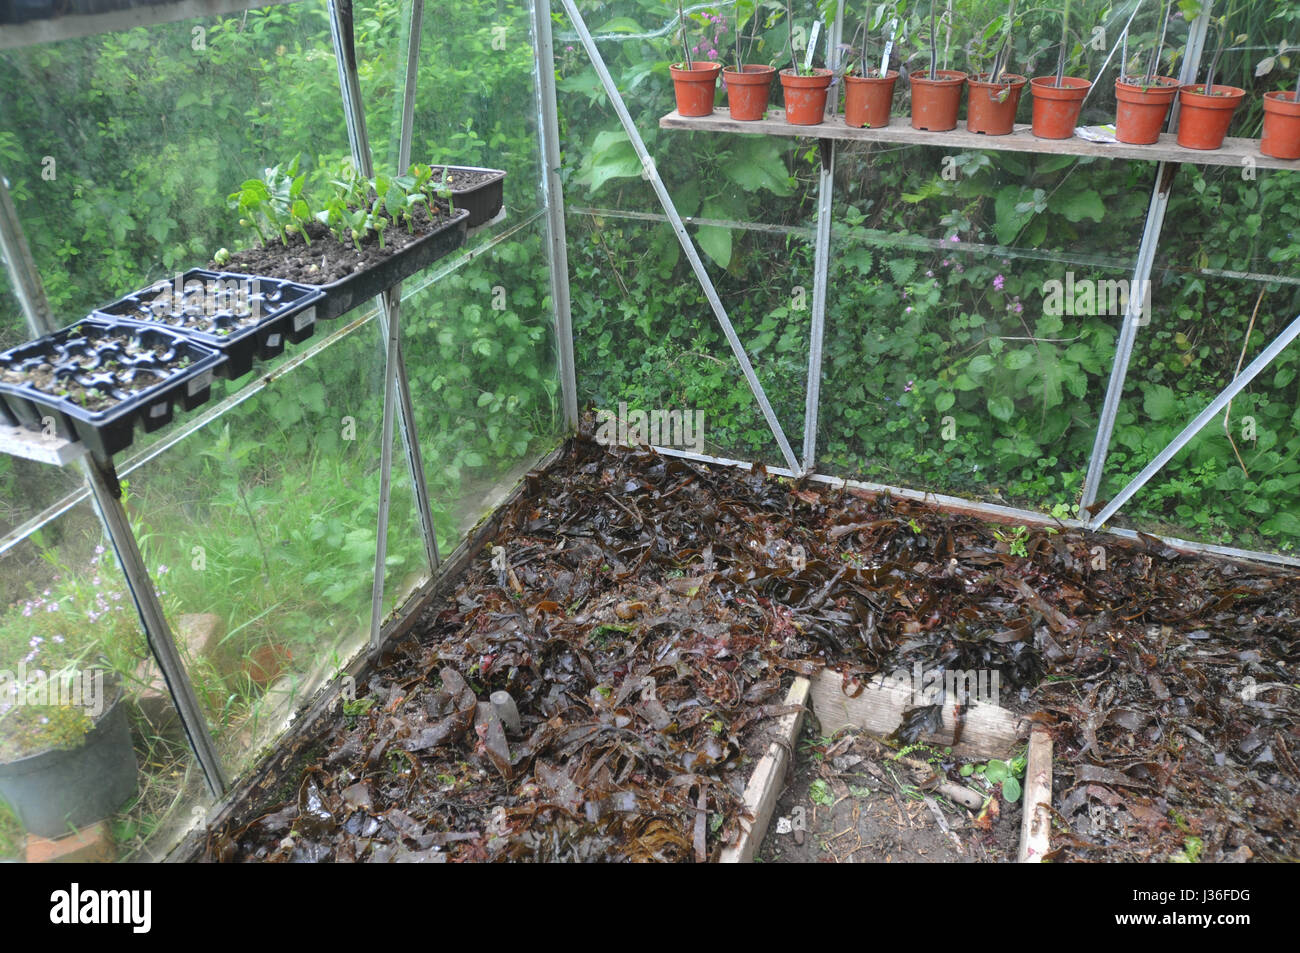 Seaweed laid onto the soil in a greenhouse to increase fertility. - Stock Image